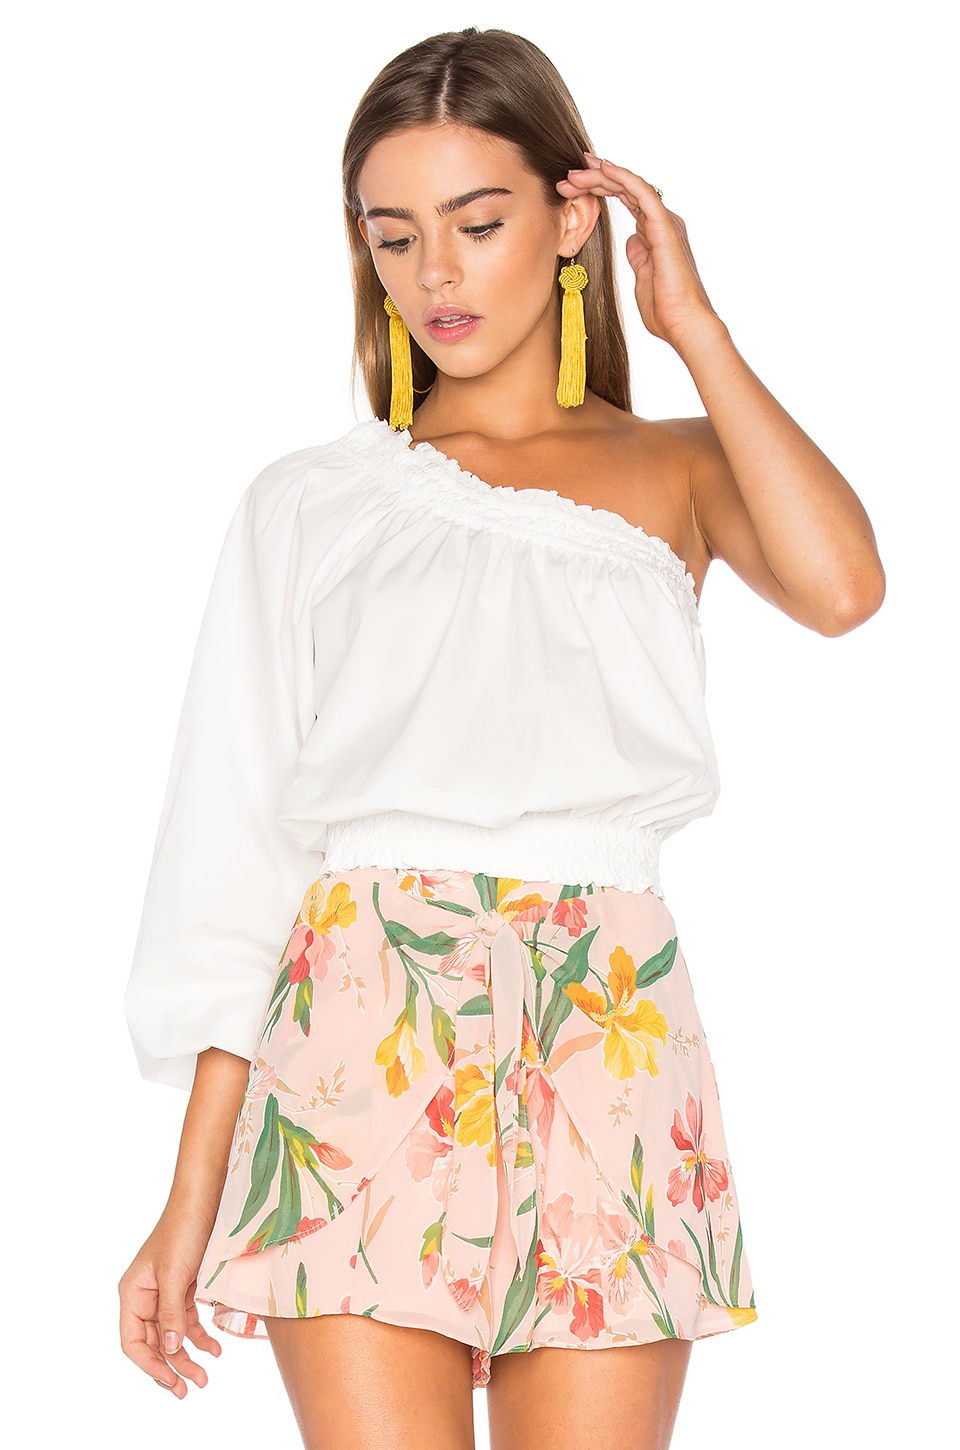 Free People Anabelle Asymmetrical Top in Ivory